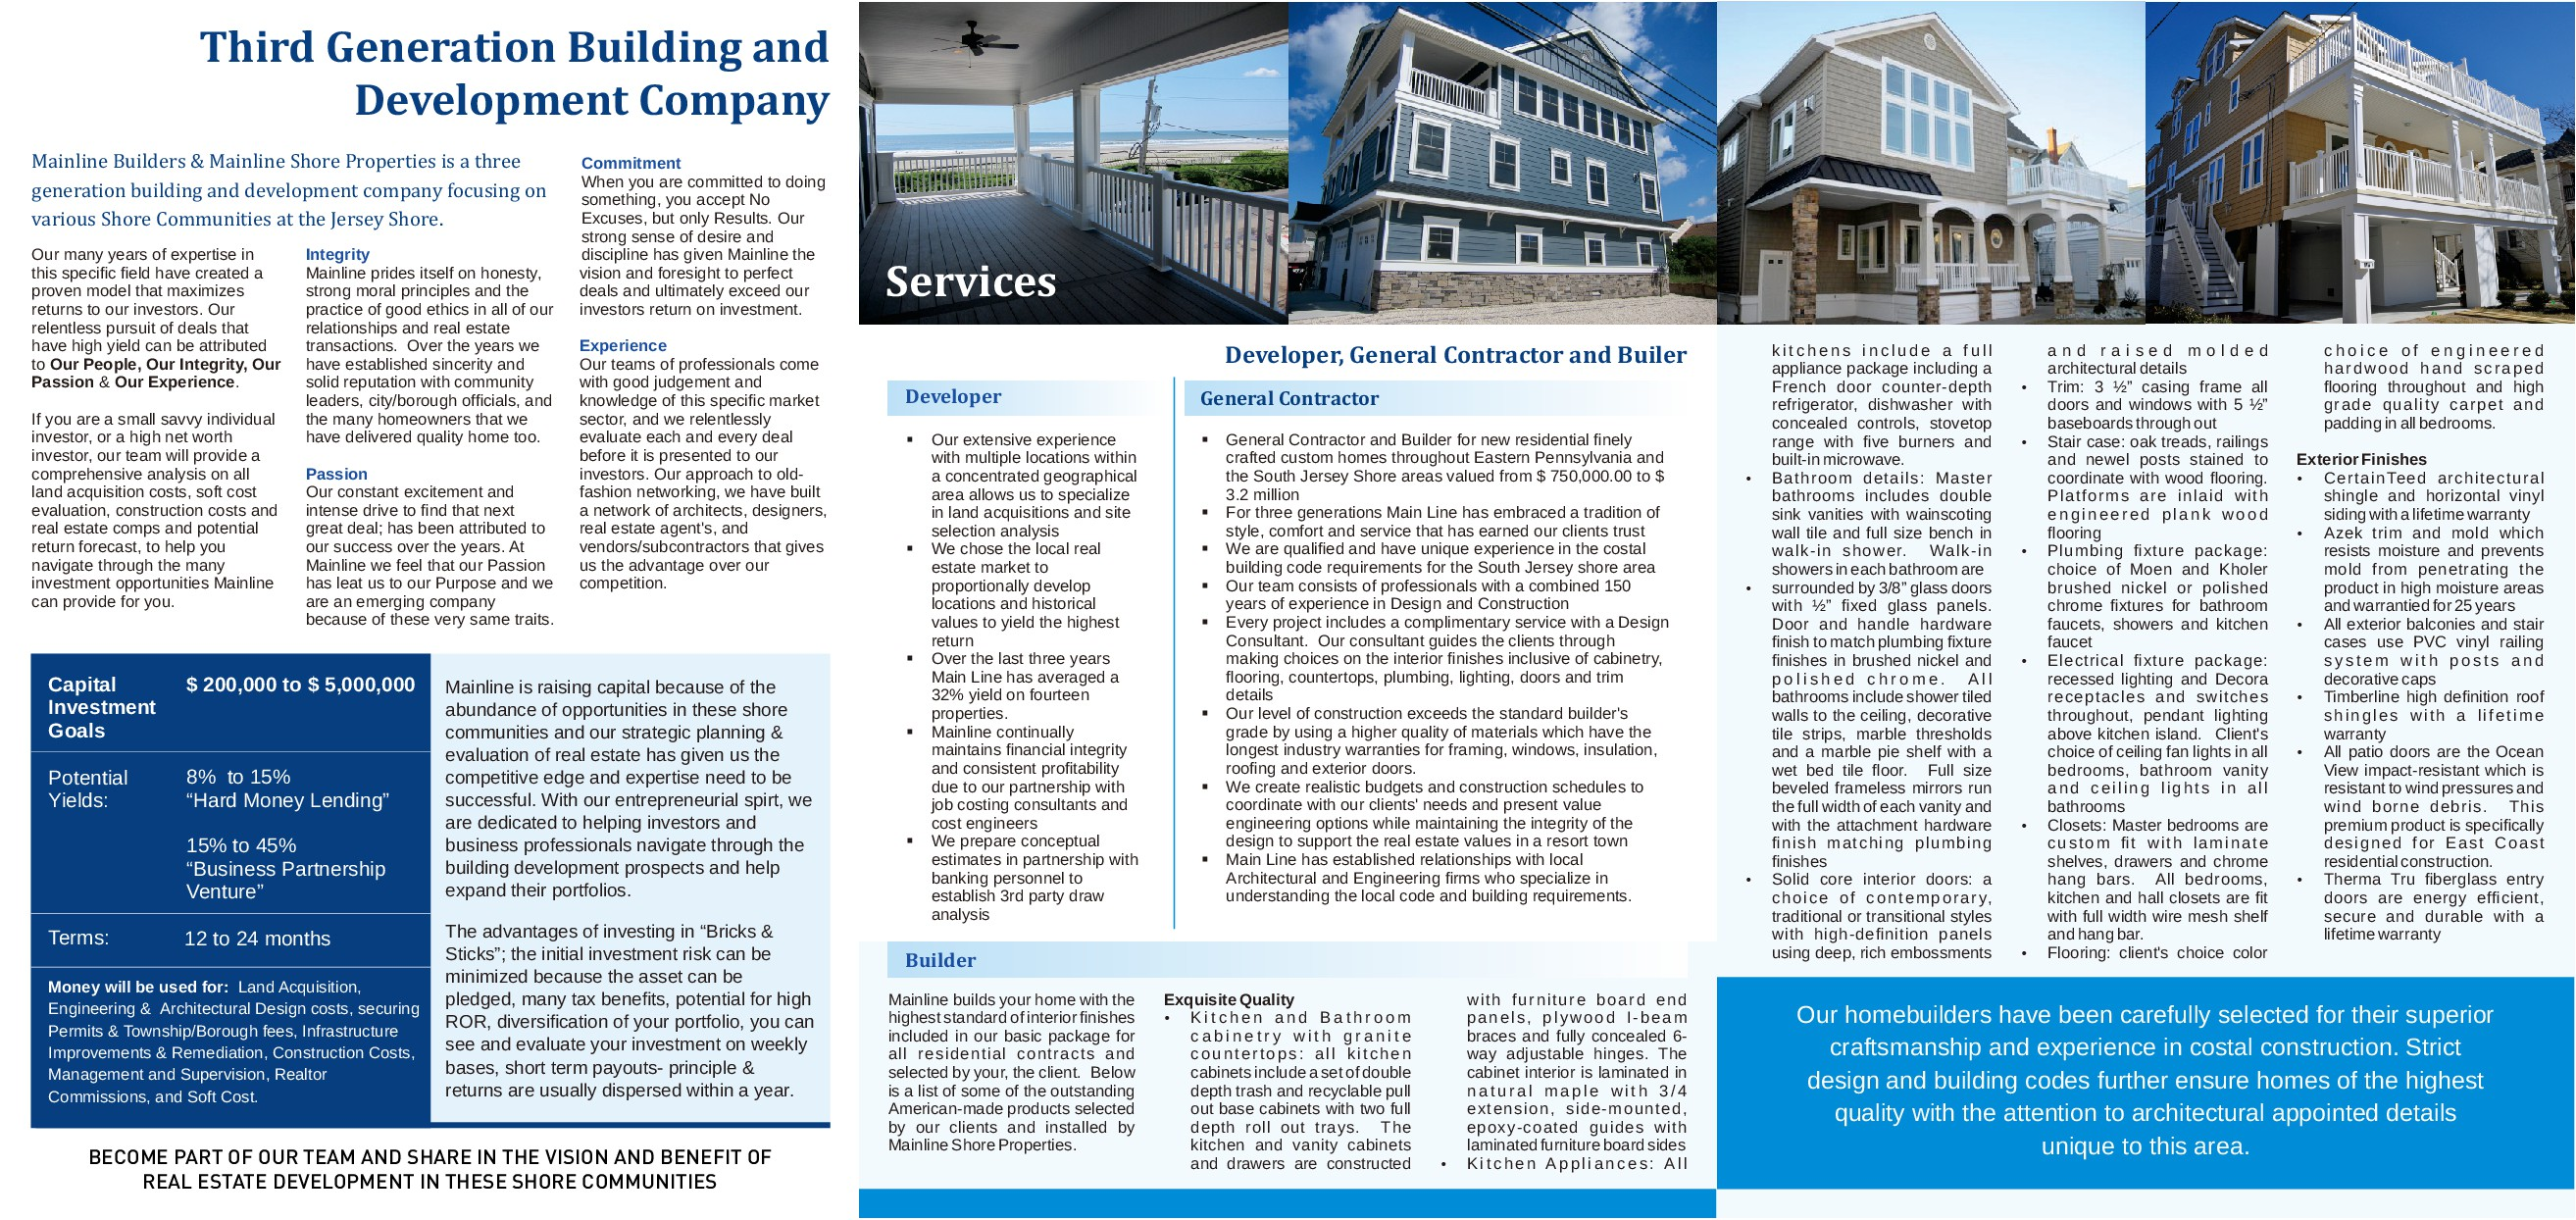 Create a professional brochure for an upscale property developer